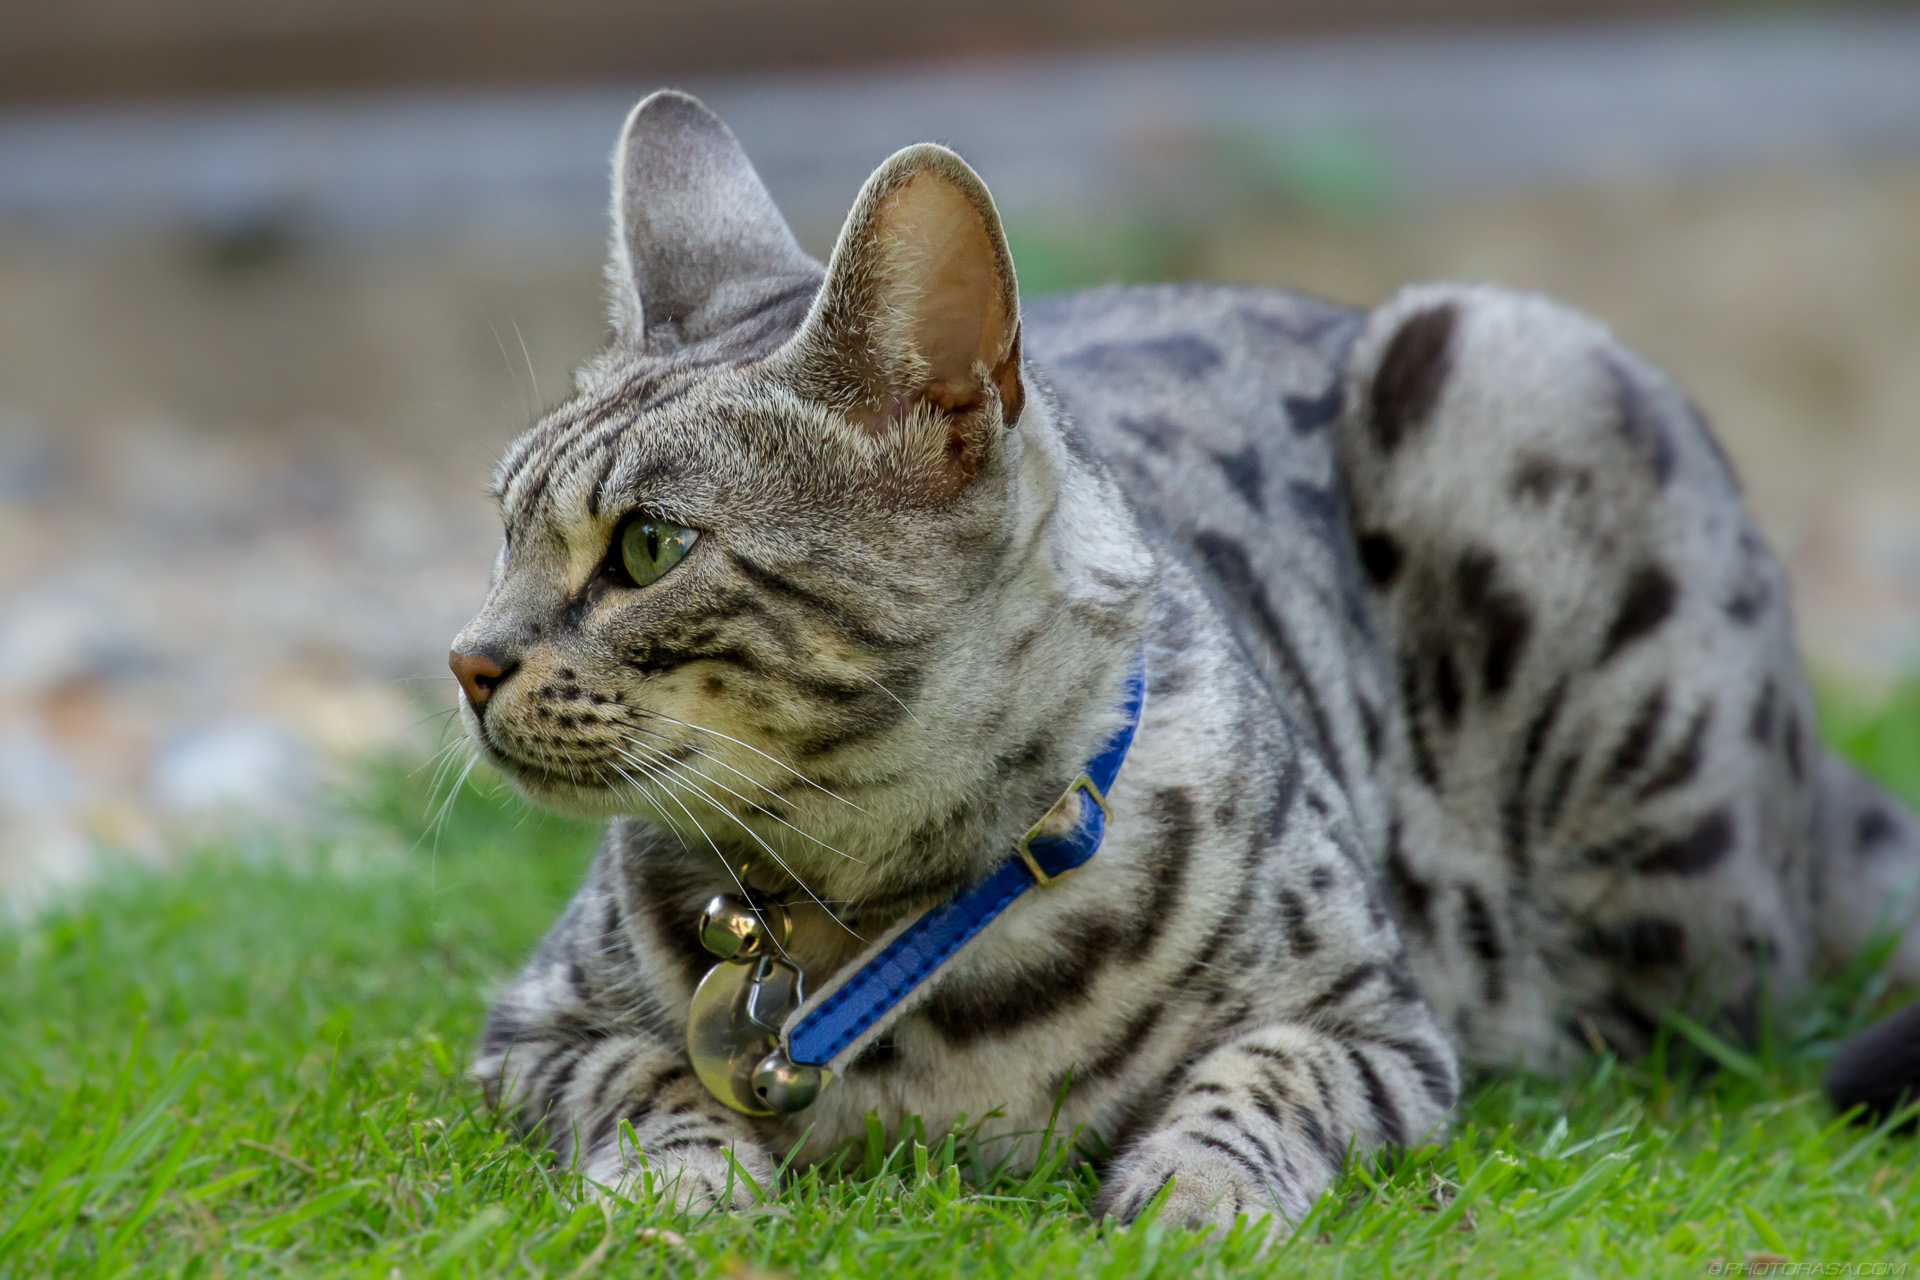 http://photorasa.com/silver-tabby-cat/looking-left/